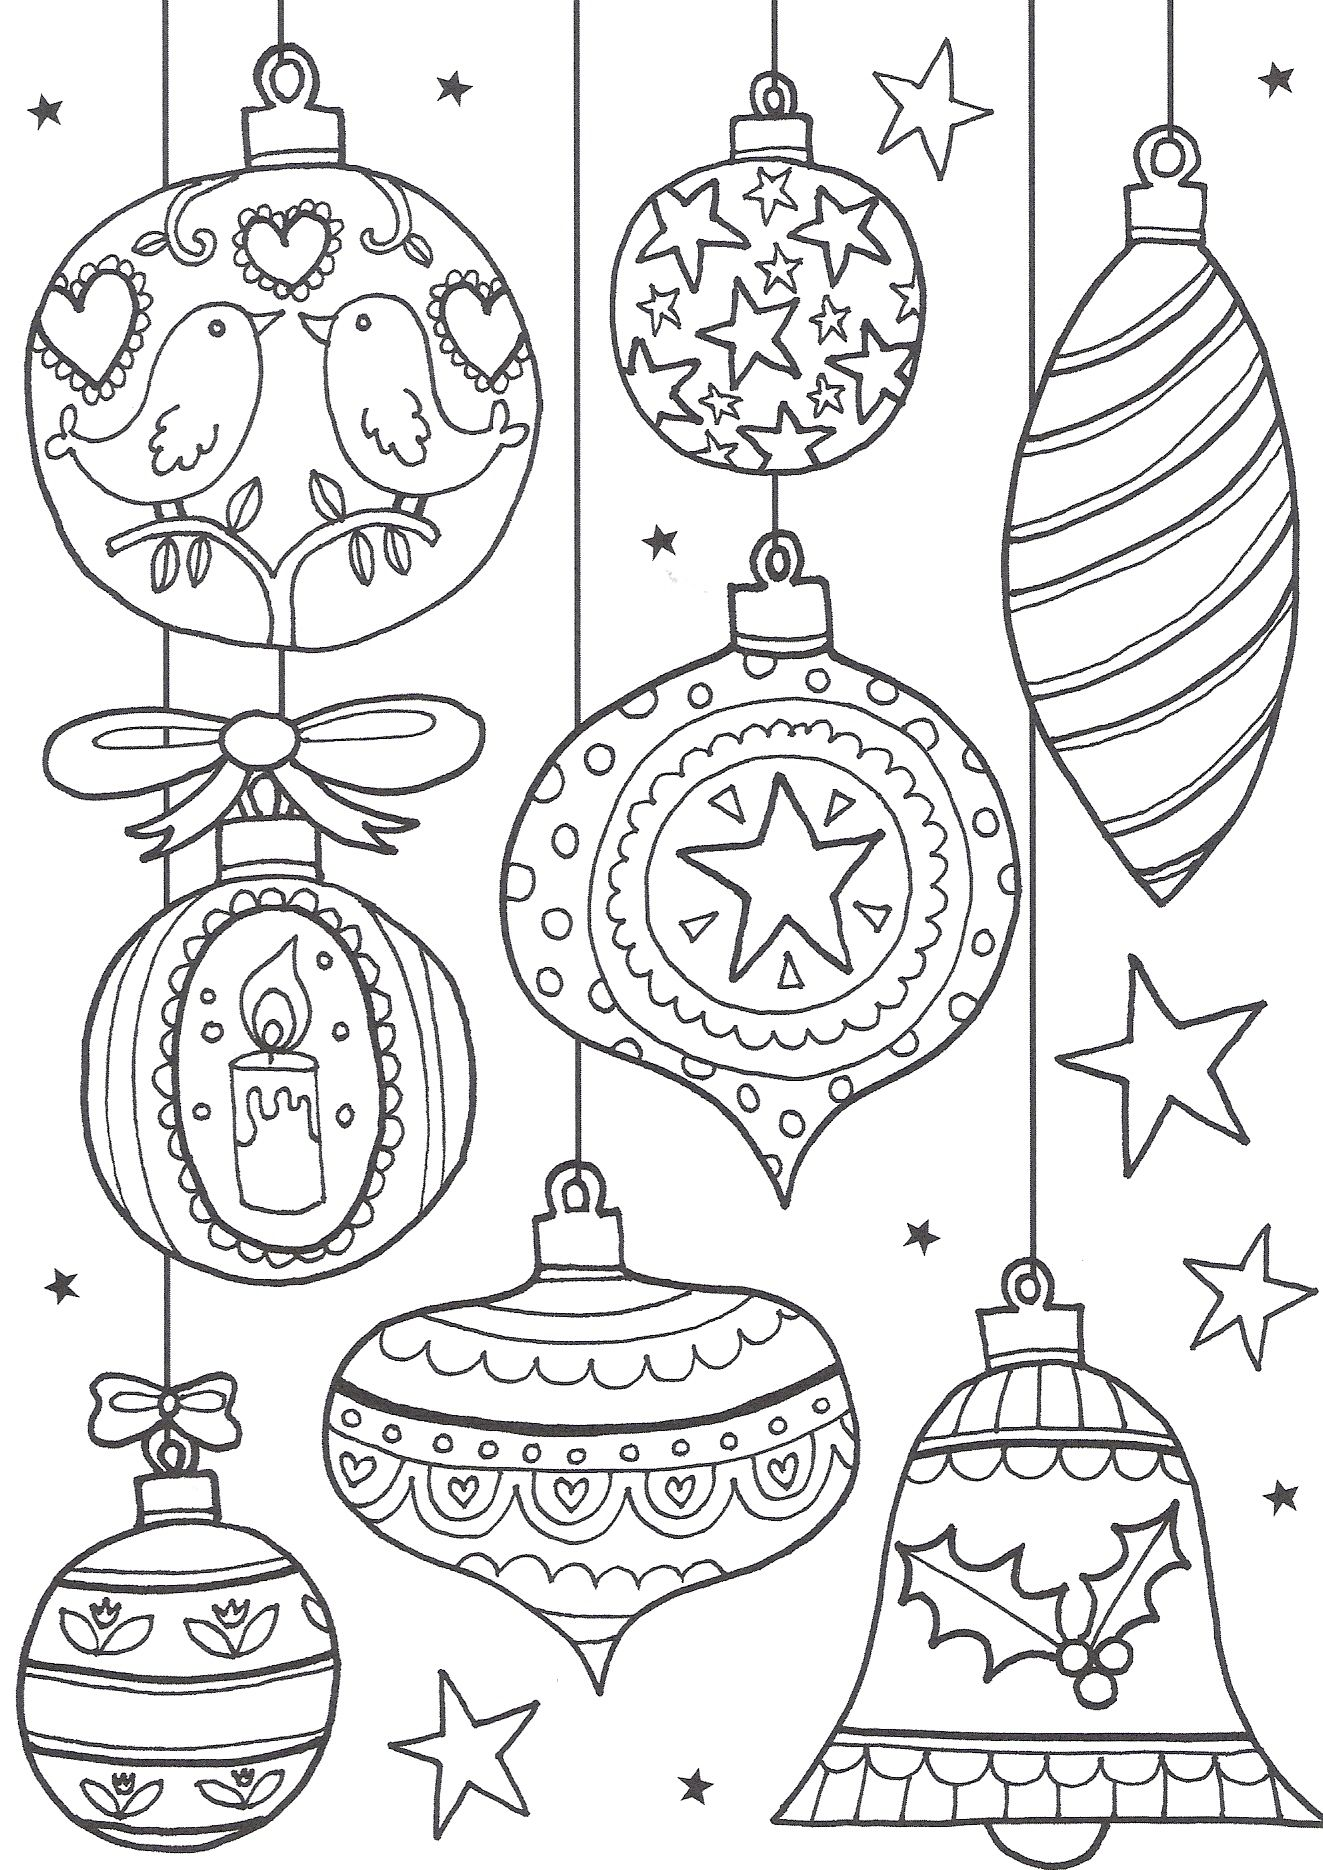 Free Christmas Colouring Pages for Adults – The Ultimate Roundup